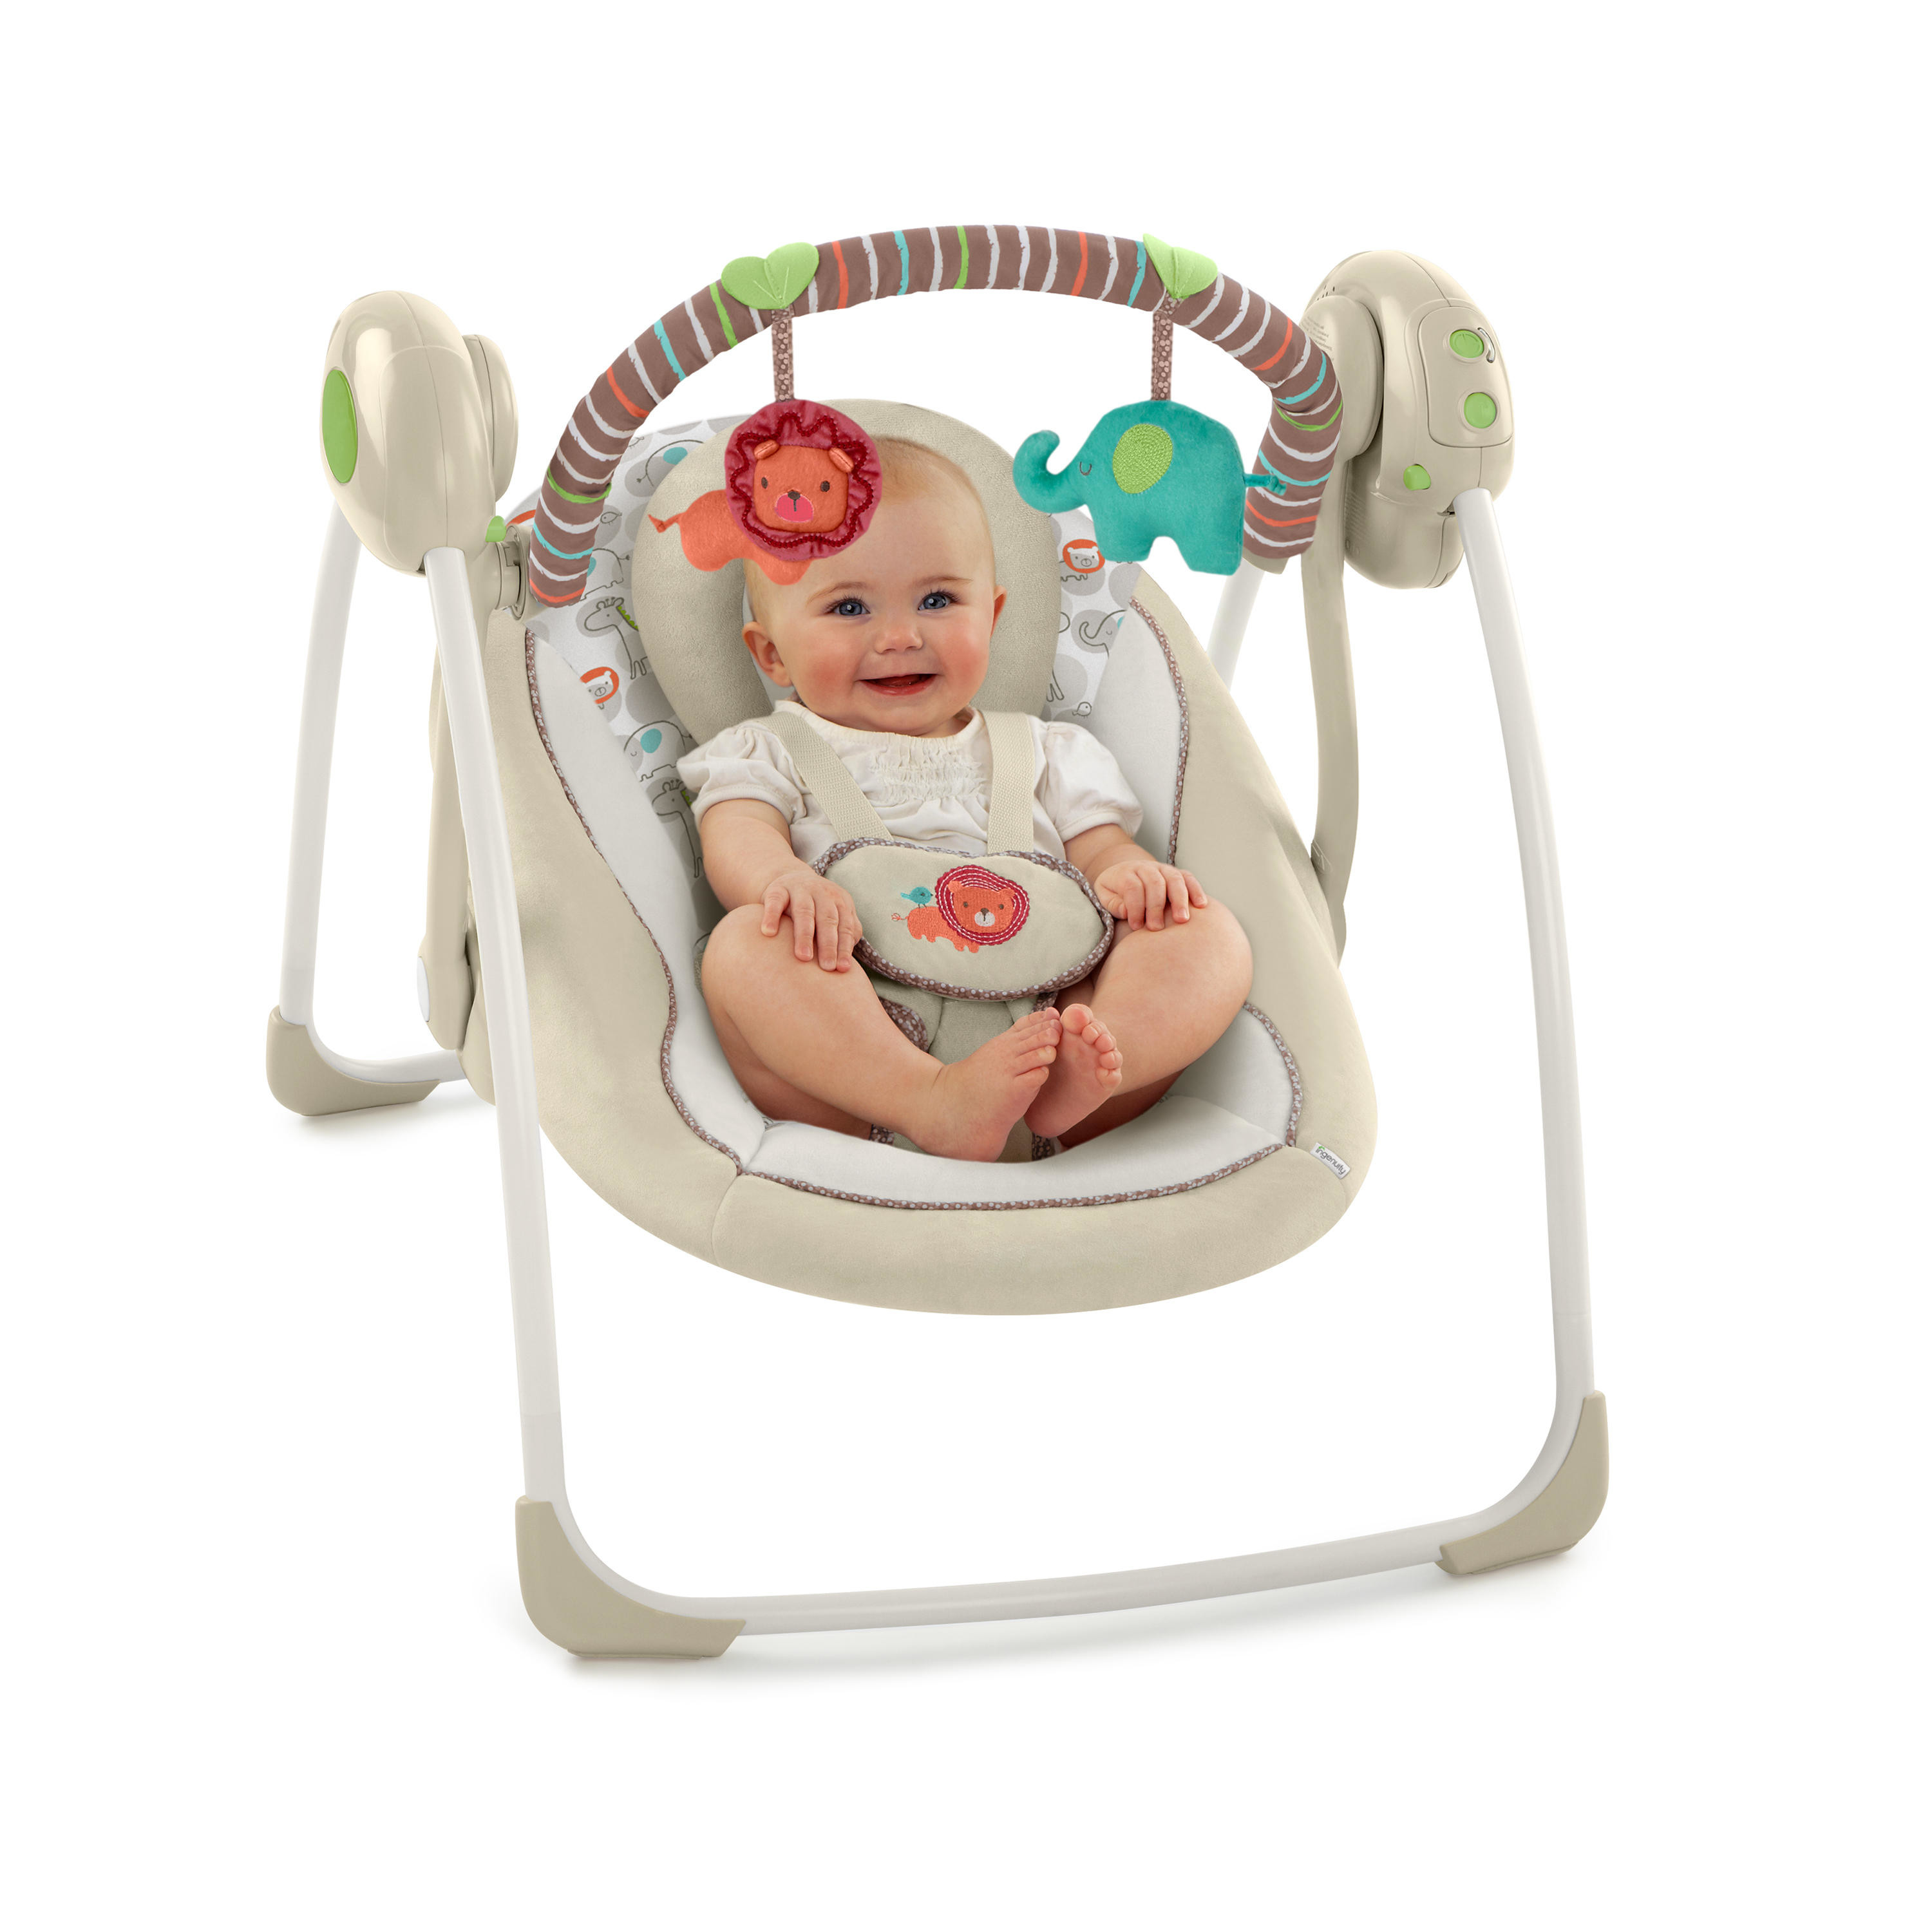 Cozy Kingdom Portable Infant Baby Harmony Rocker Swing